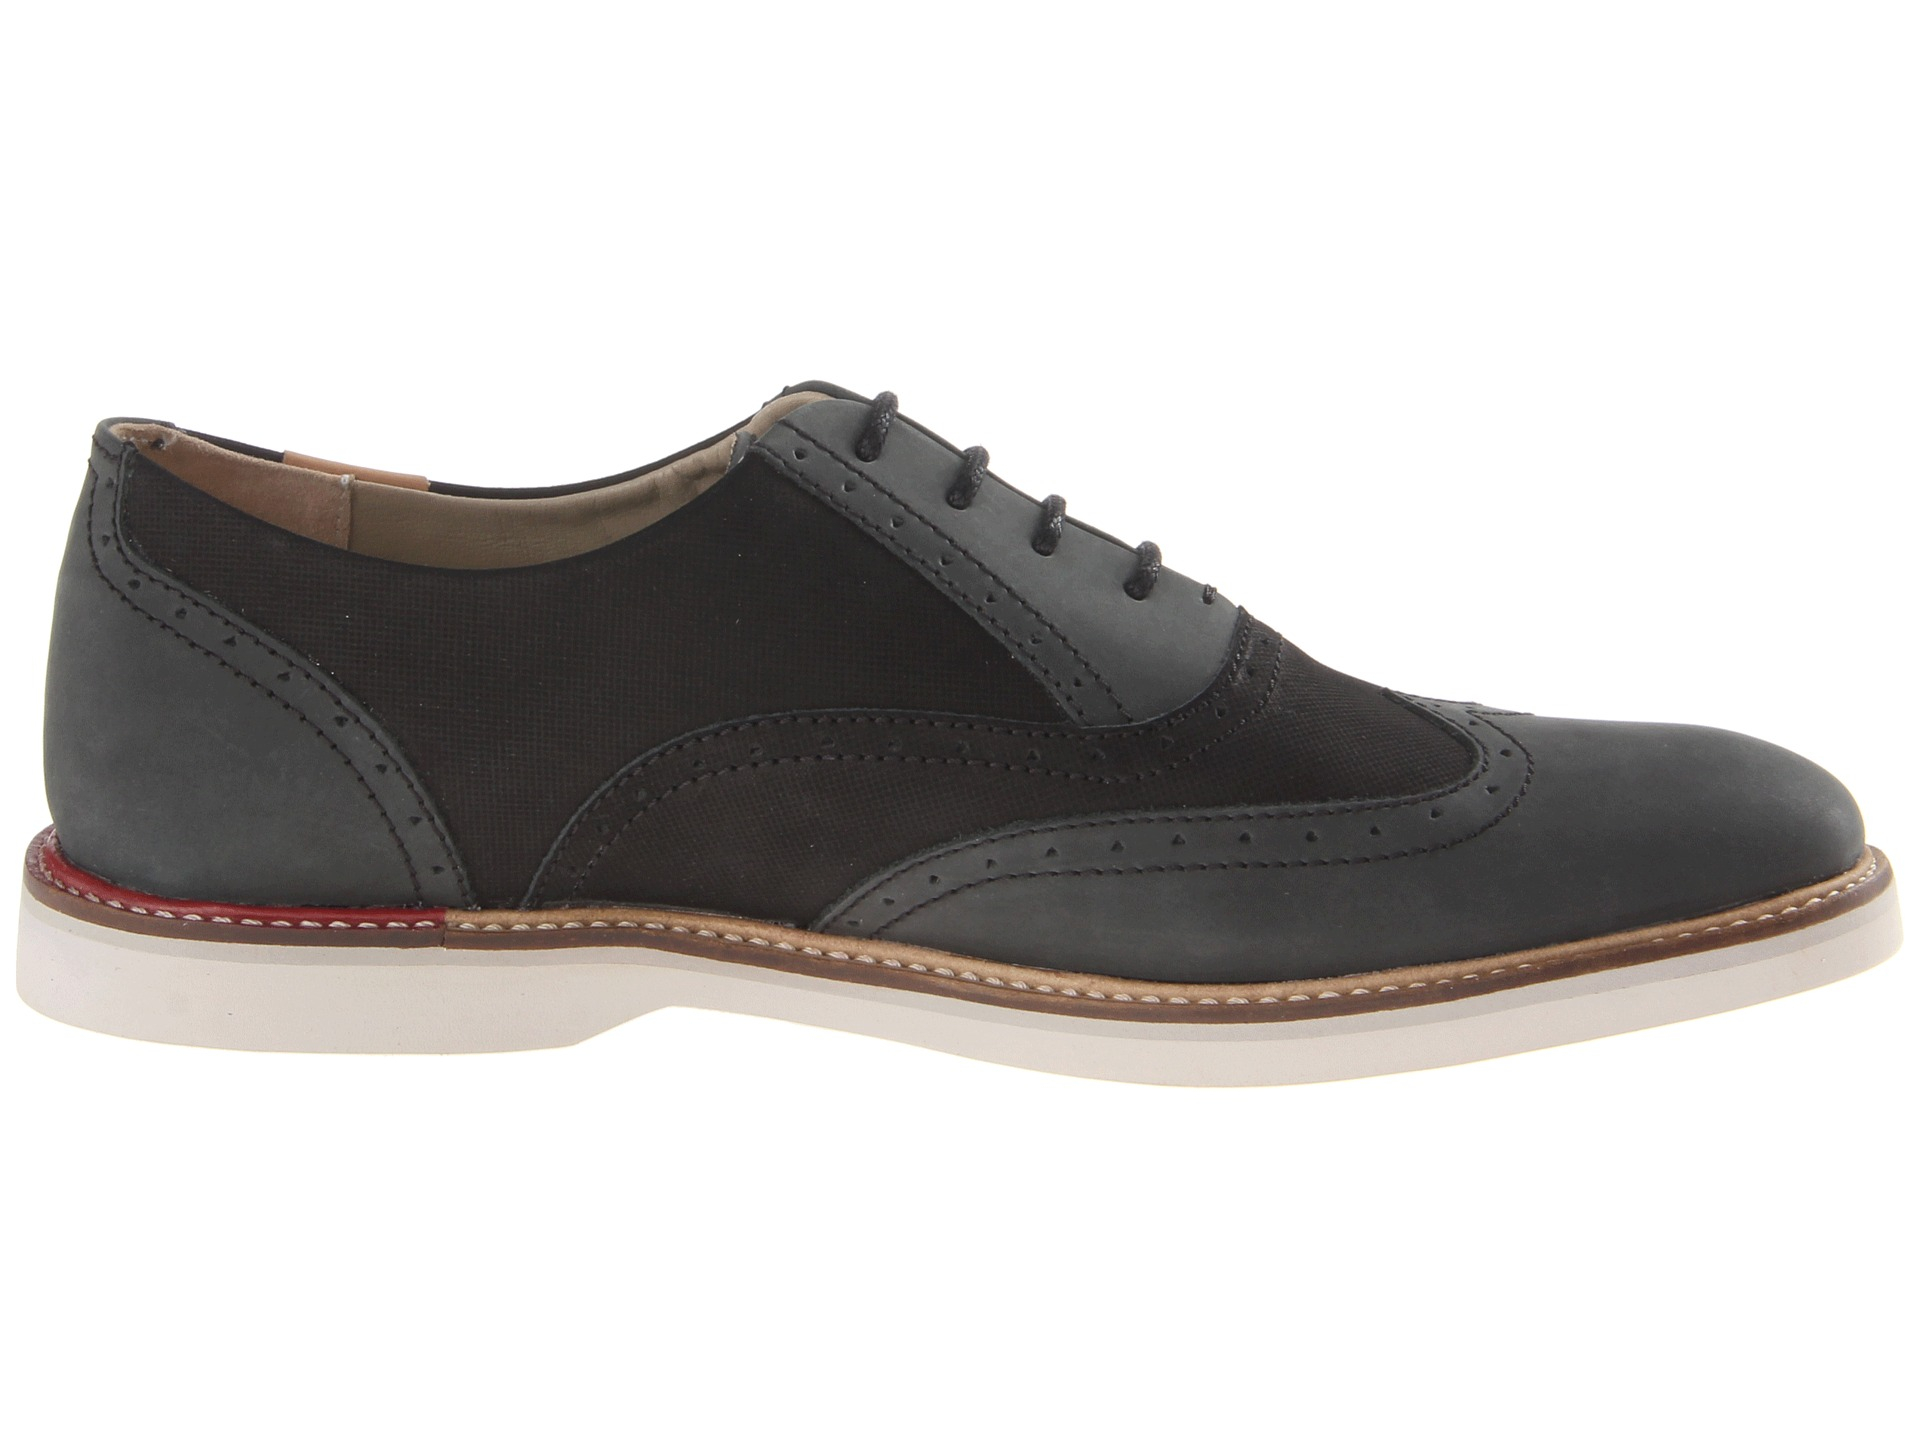 5c63a87c7aea86 Lyst - Lacoste Sherbrooke Brogue 2 in Black for Men